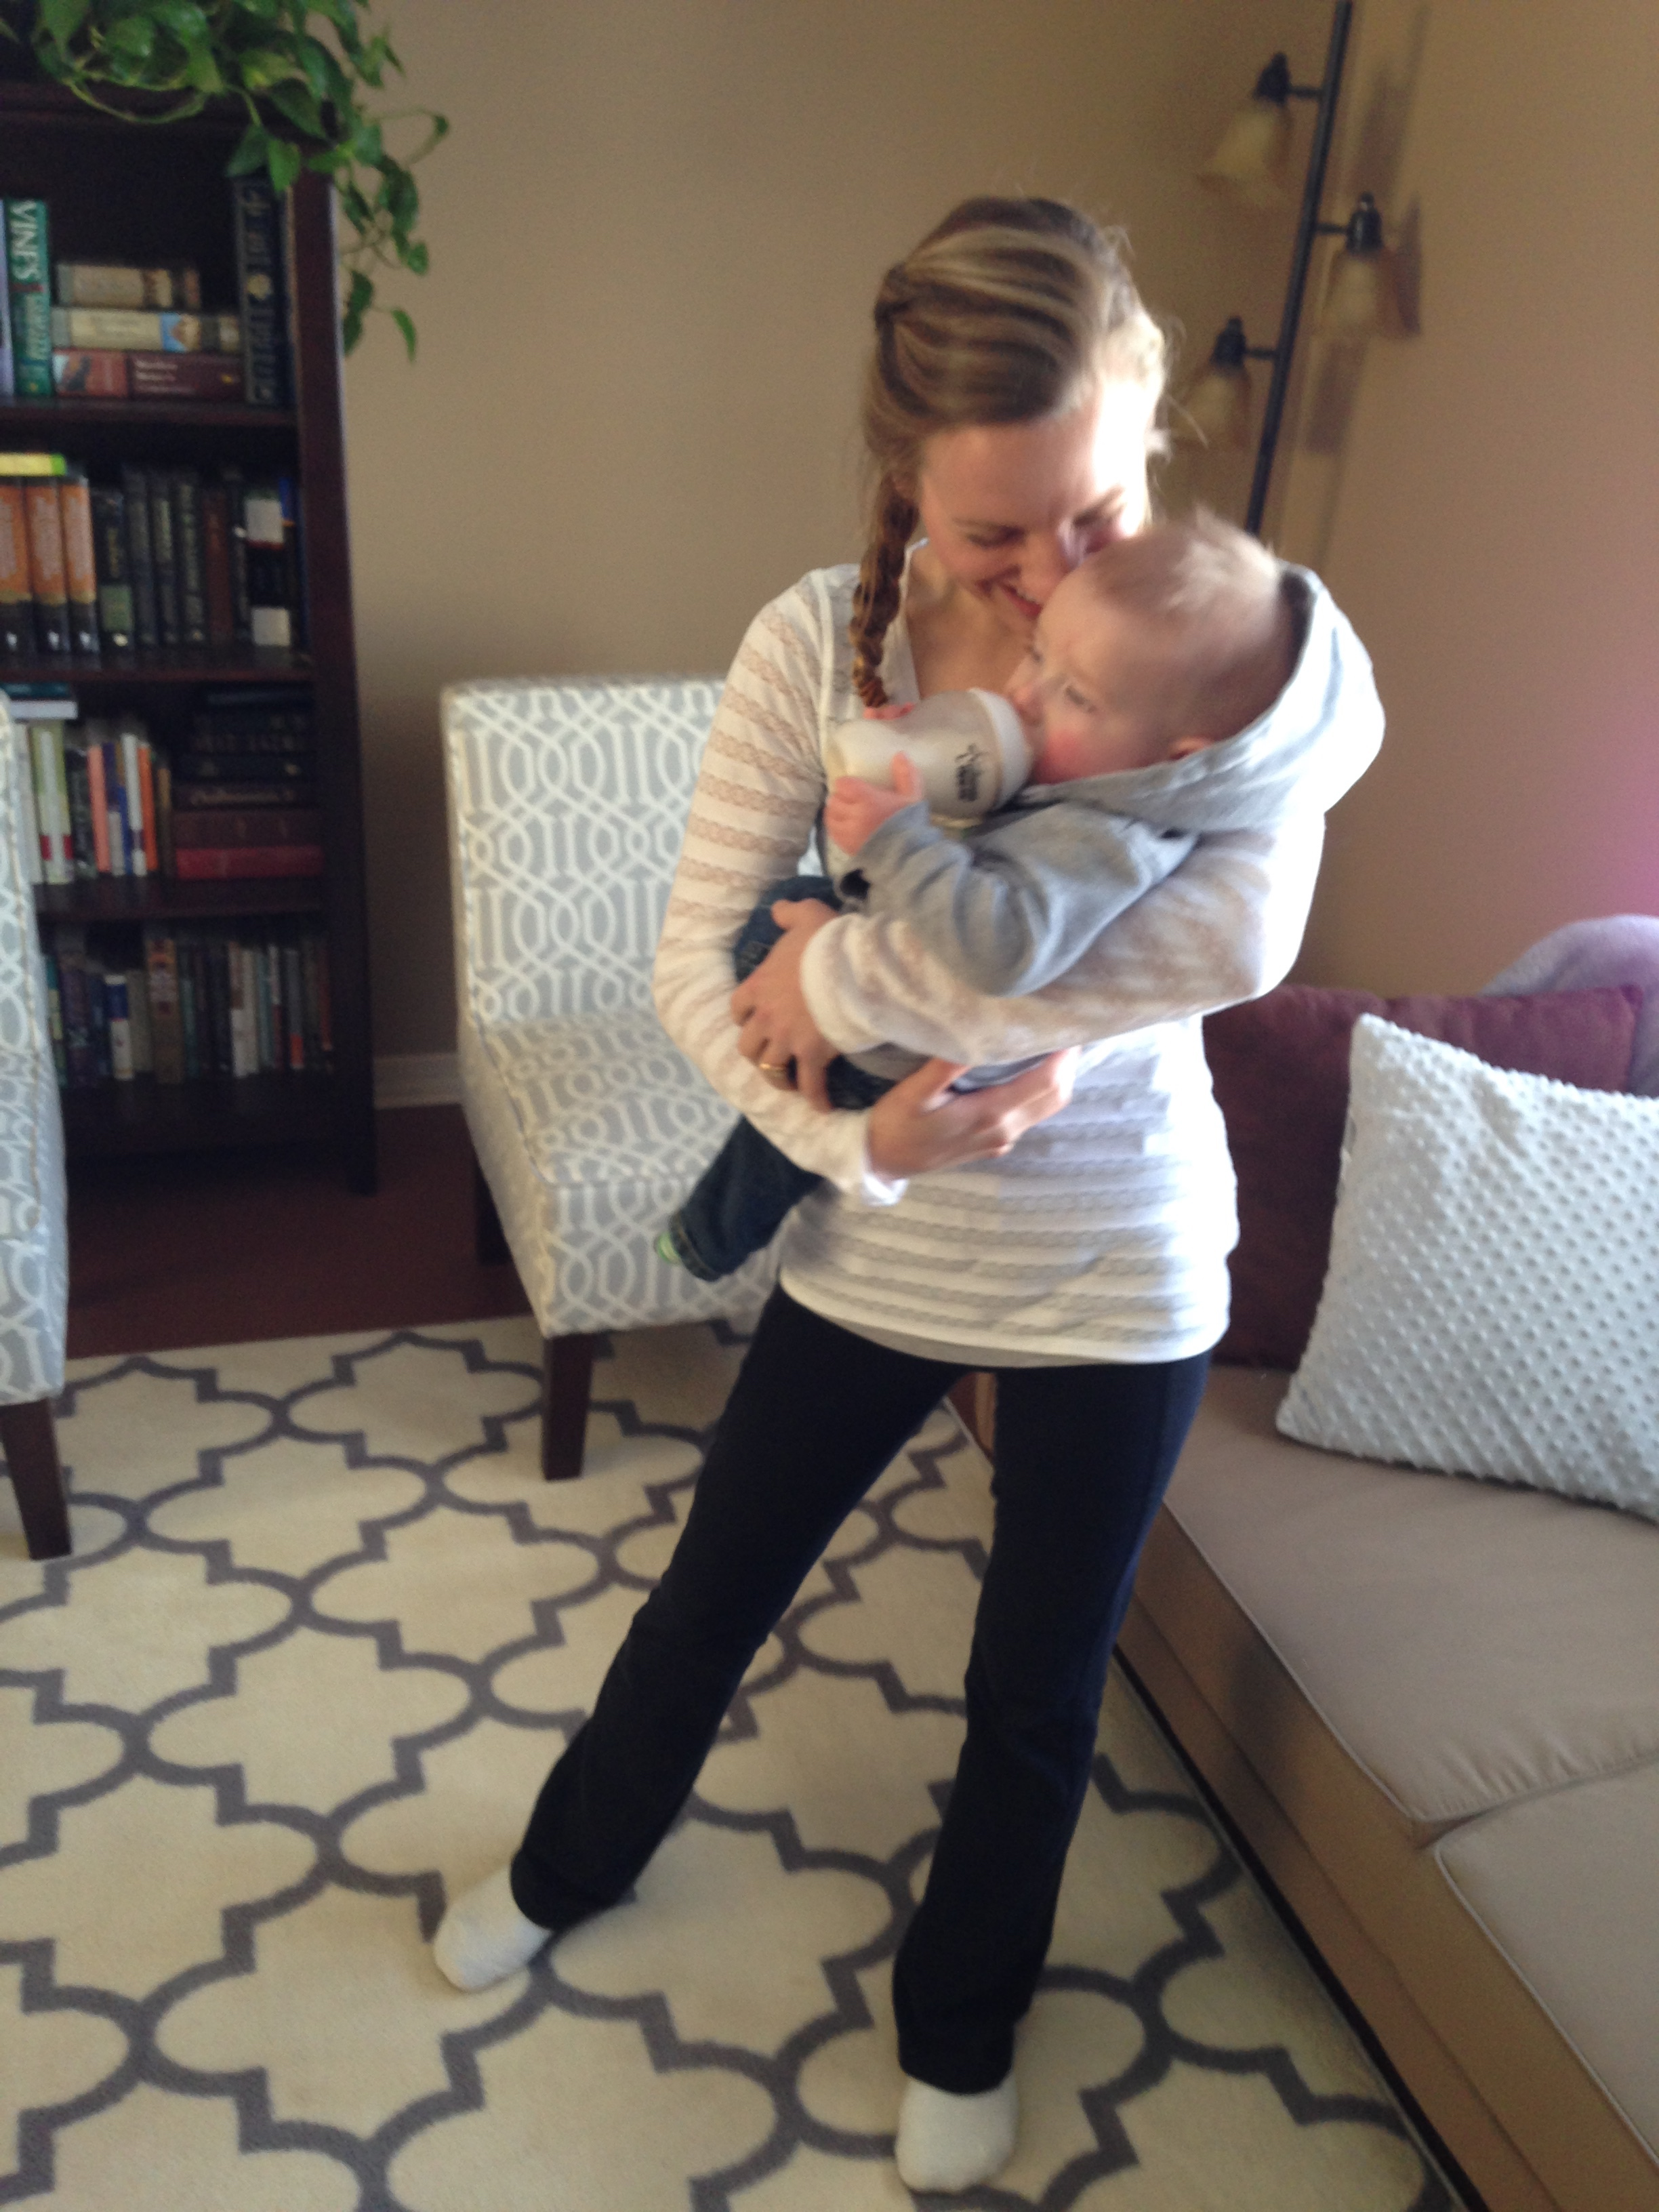 The first glorious time I stood on one leg to hold Jack.